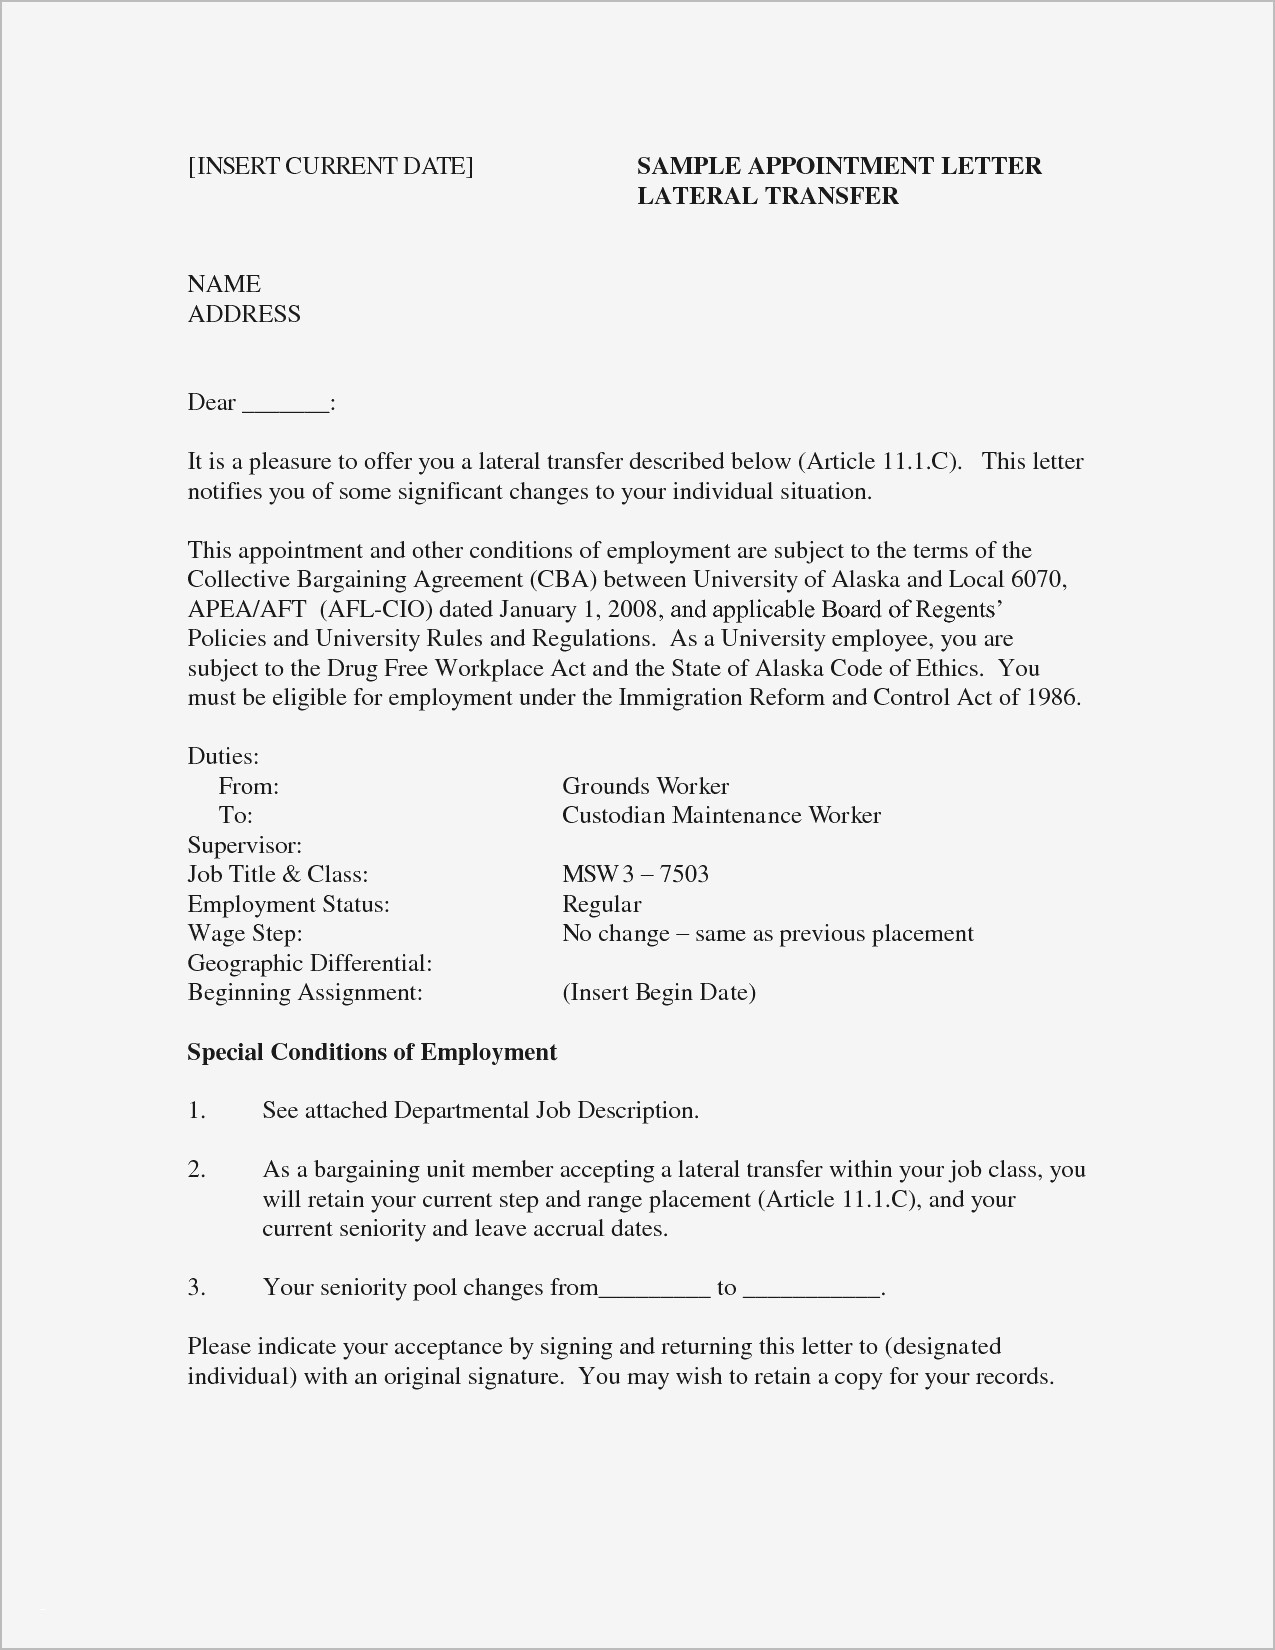 Resume for Transfer Students - Substitute Teacher Resume Objective